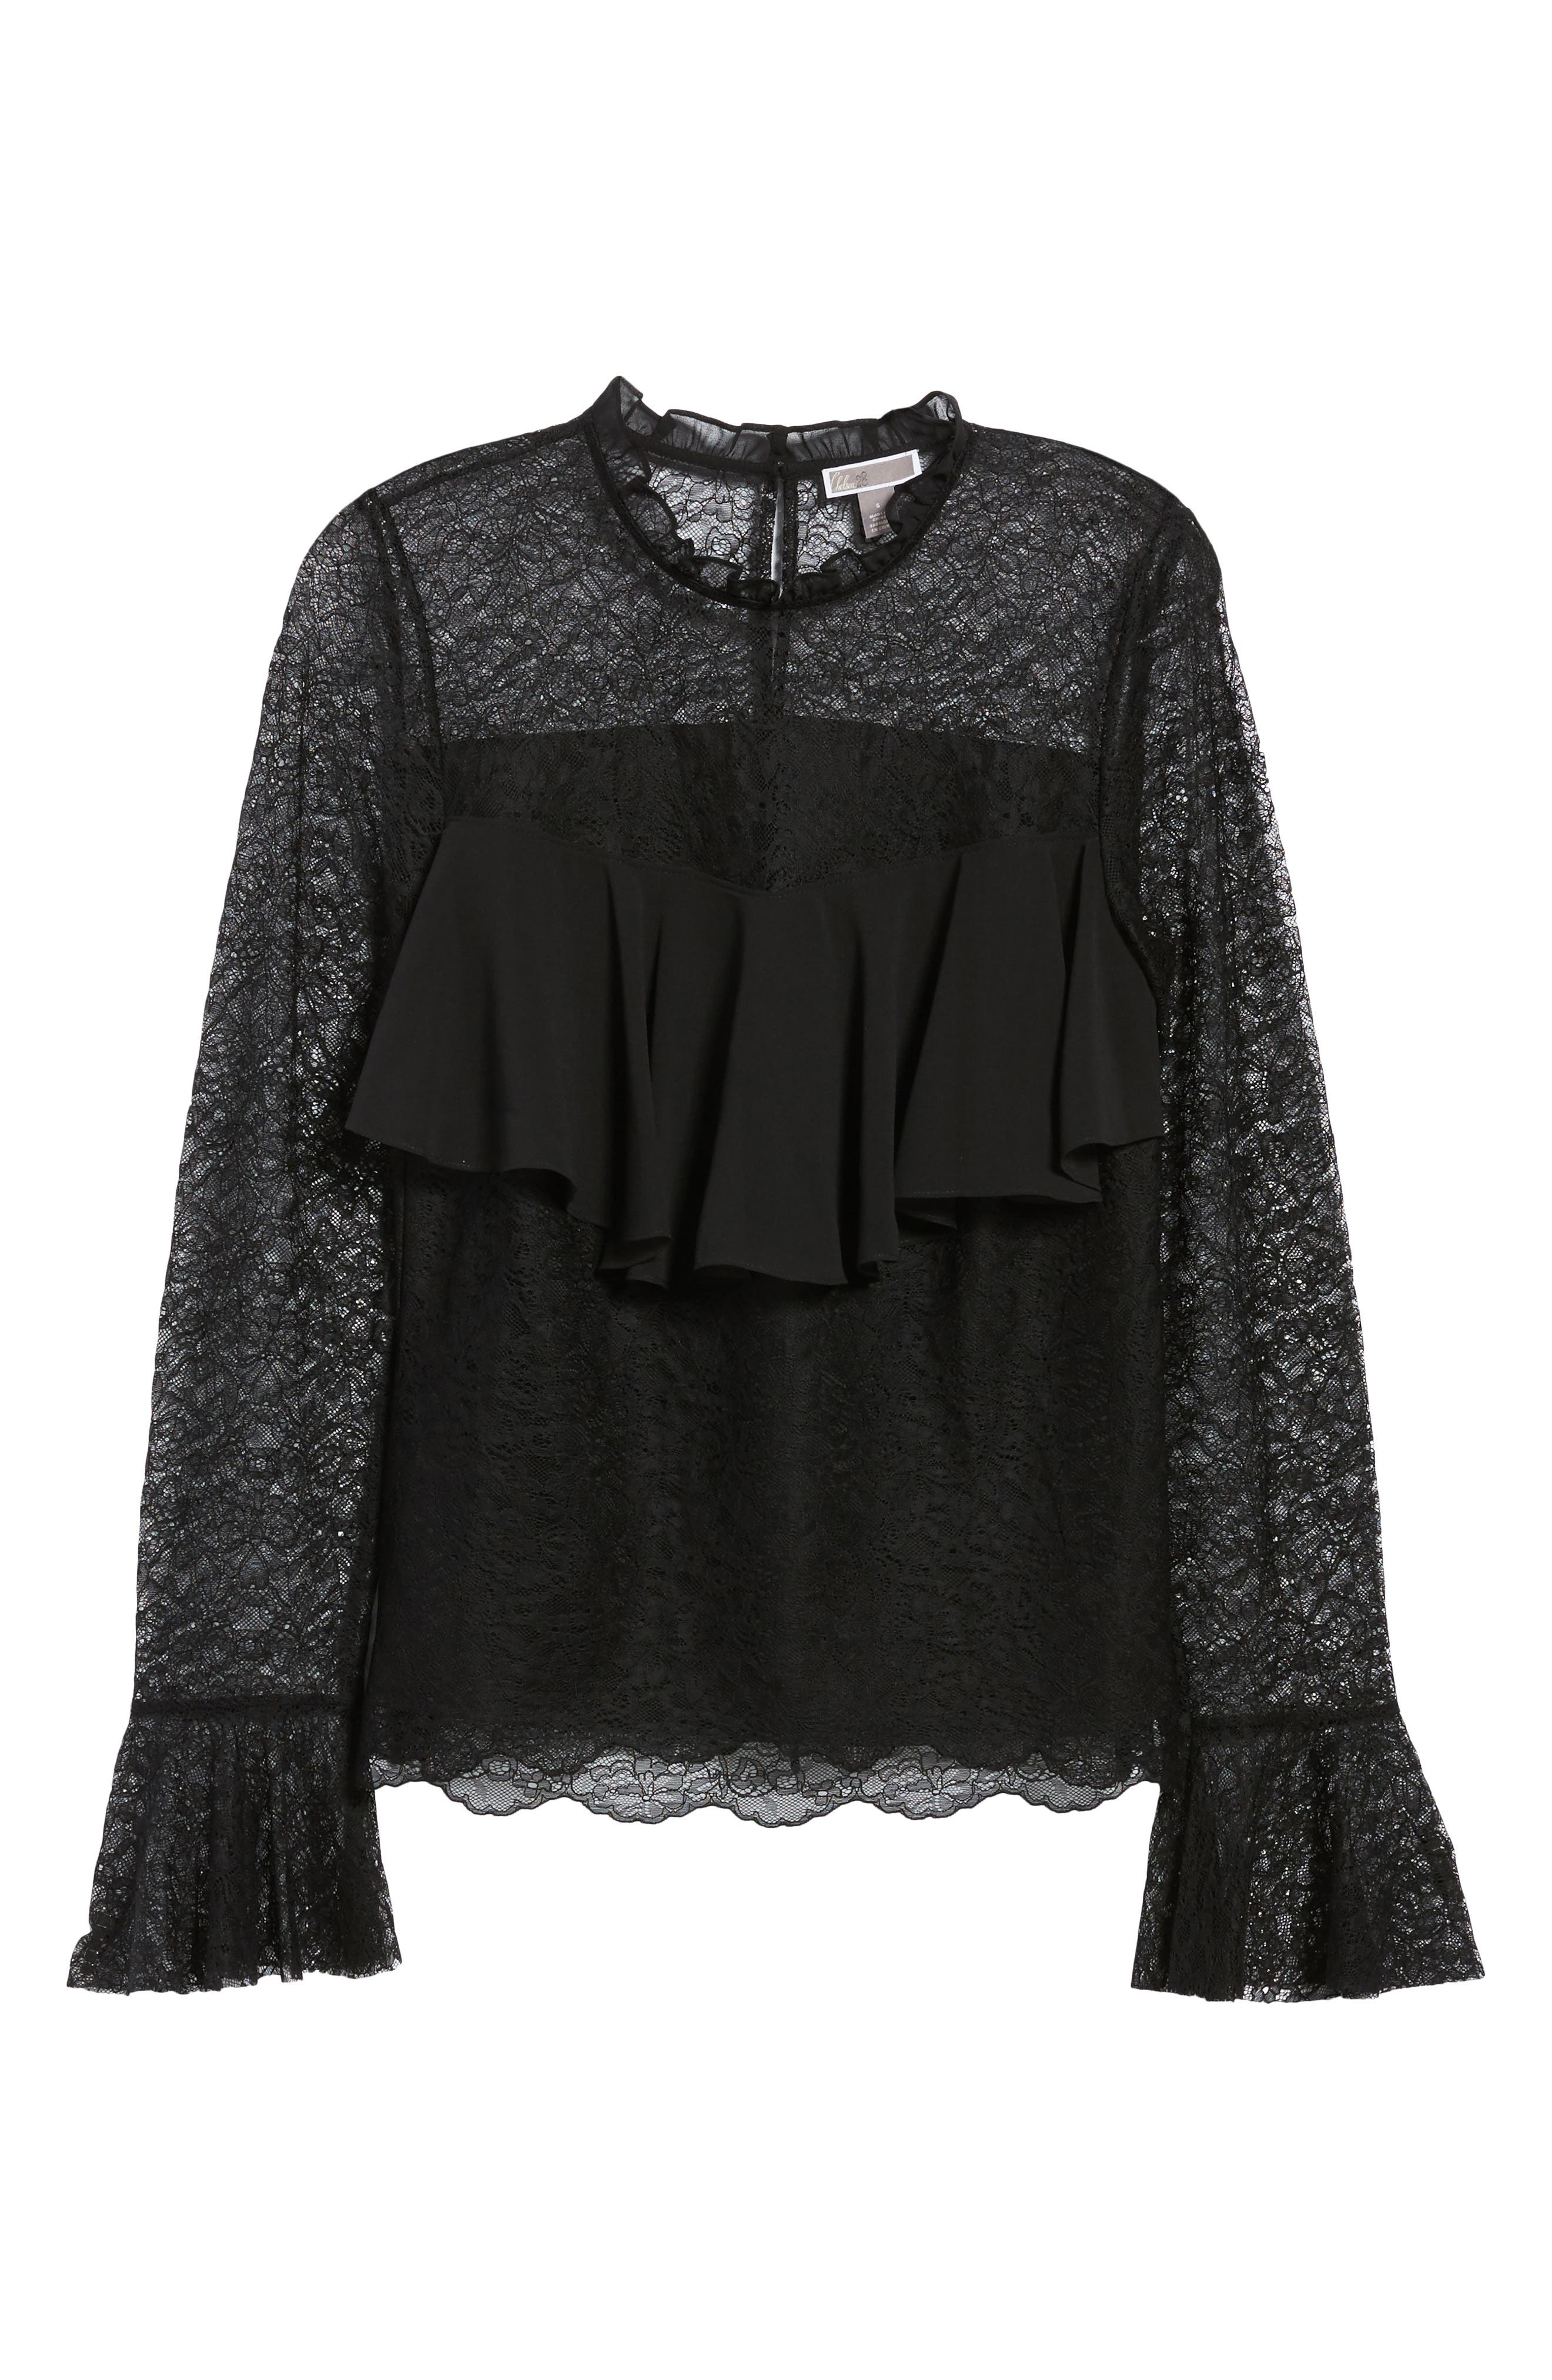 Ruffle Lace Top,                             Alternate thumbnail 6, color,                             001